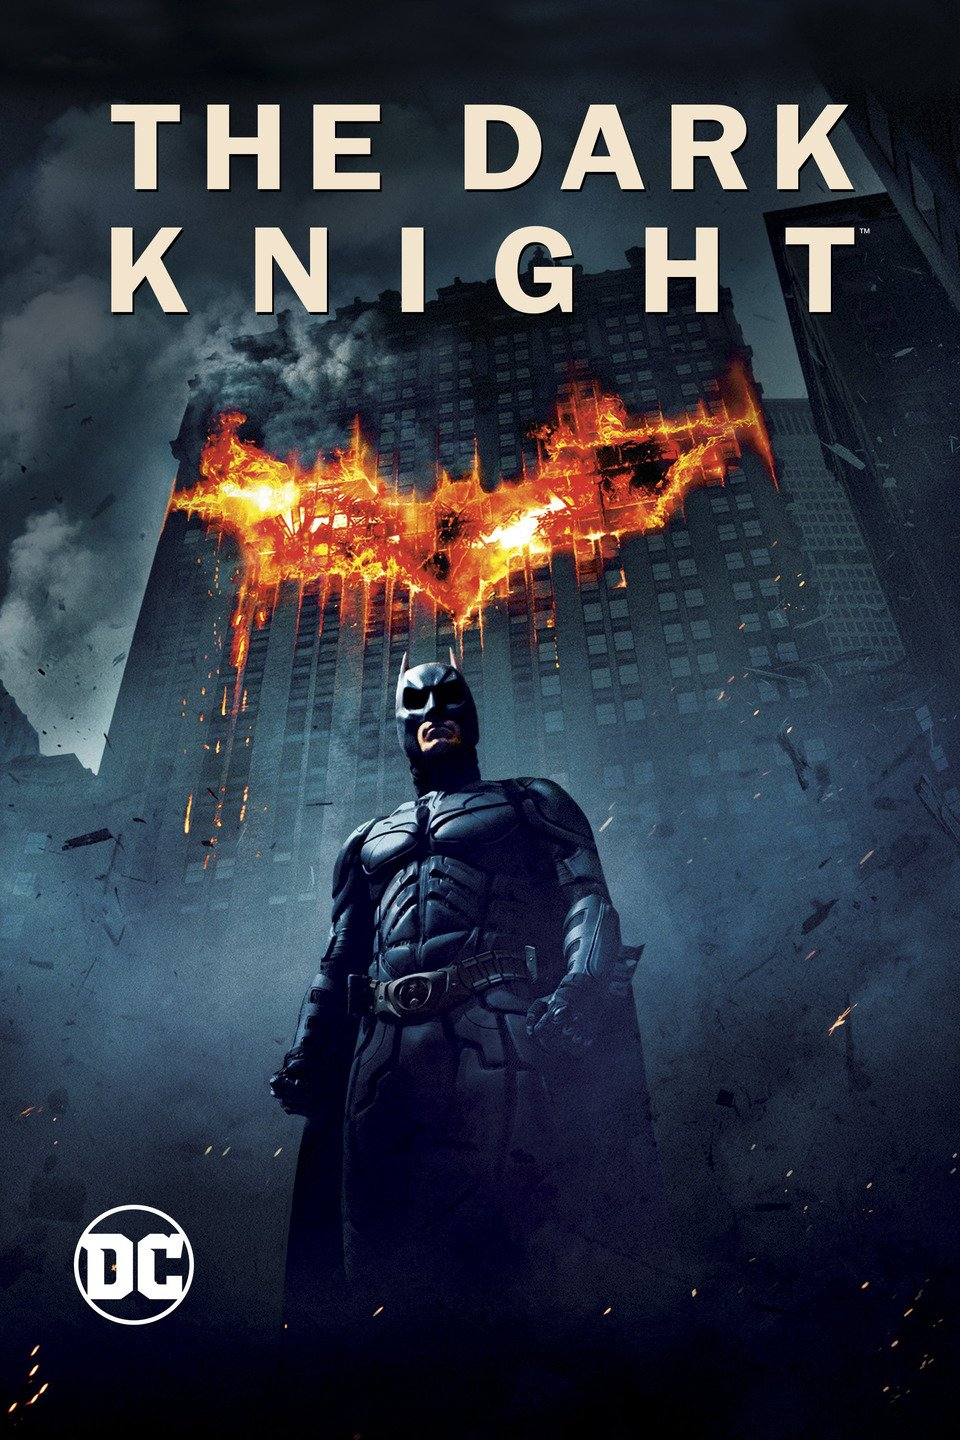 Batman: The Dark Knight-The Dark Knight